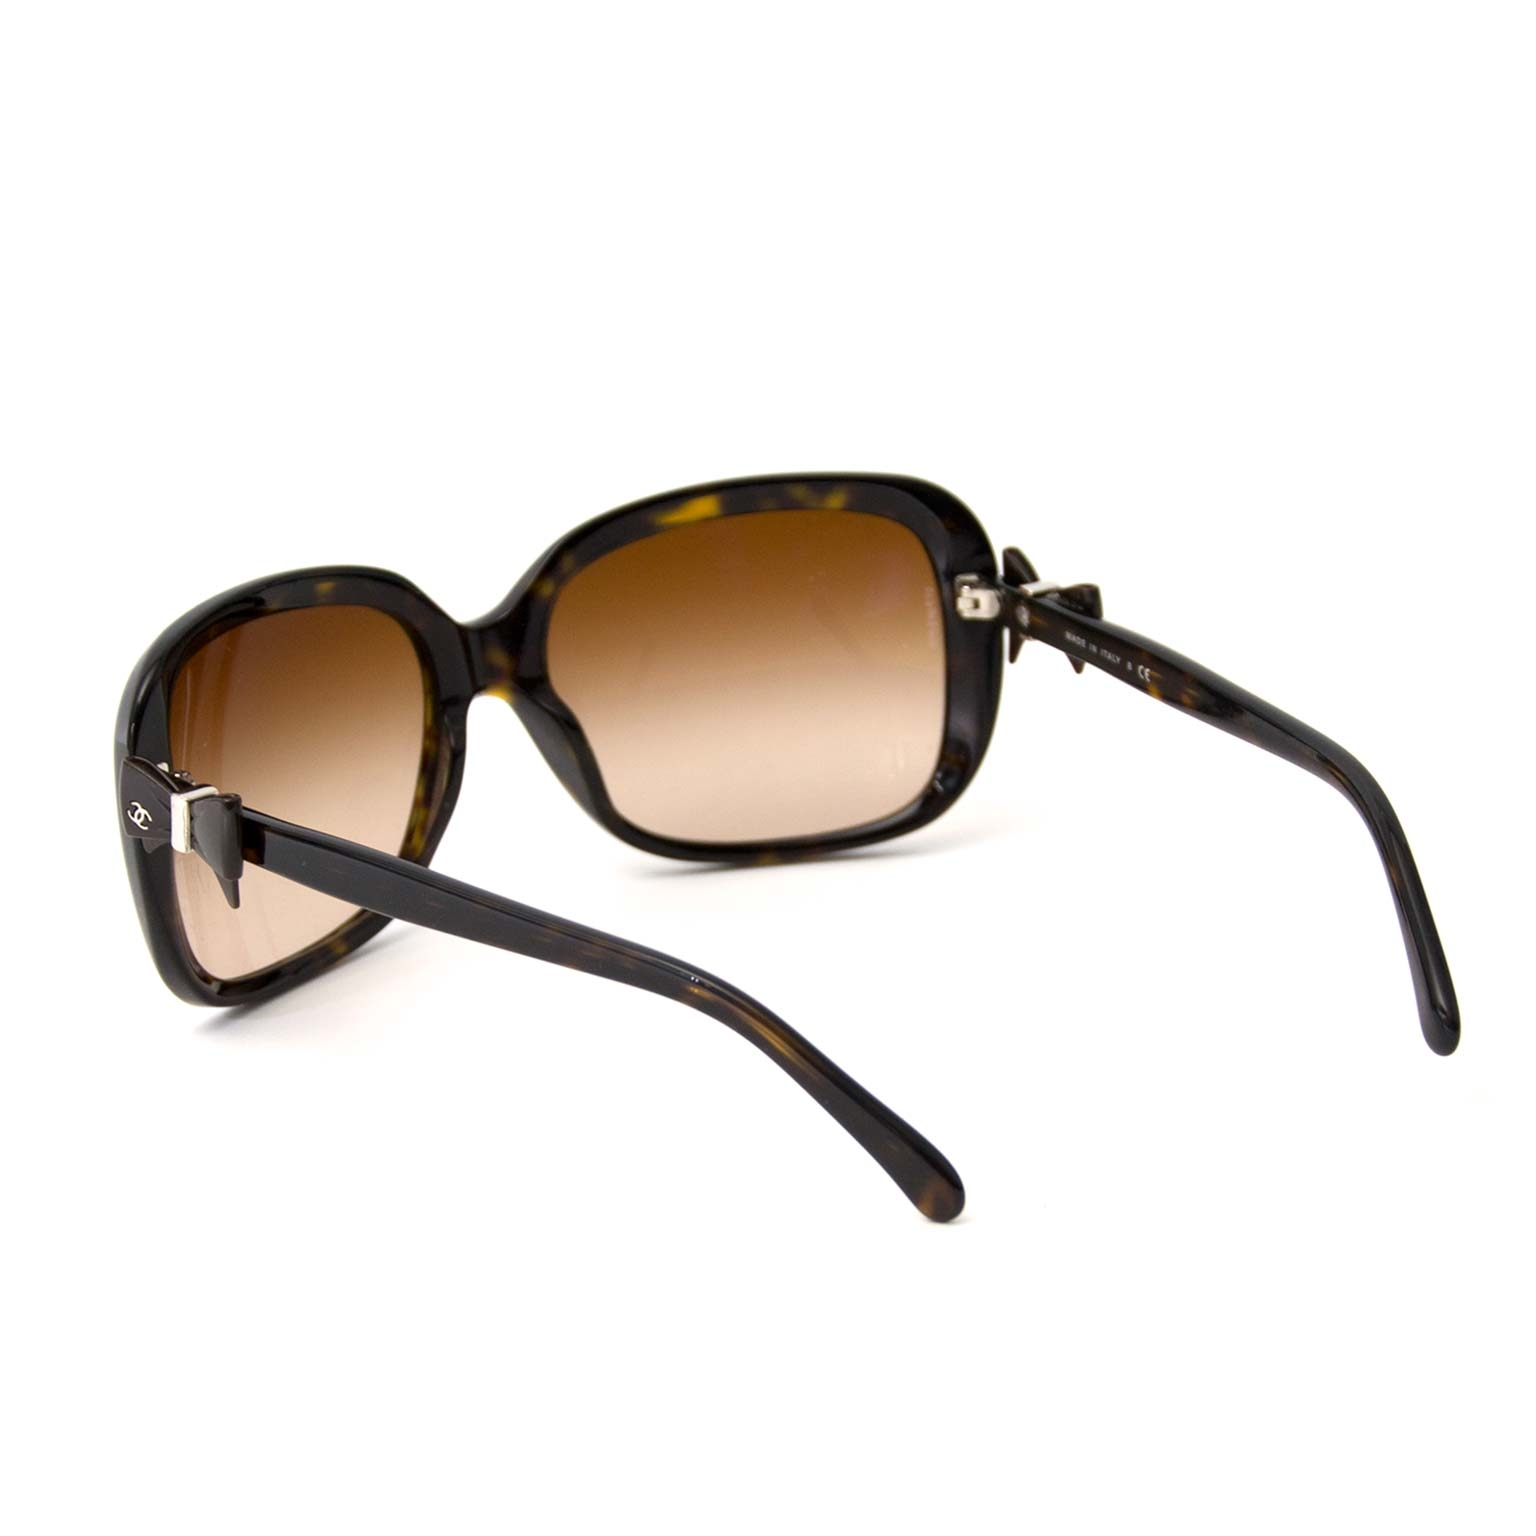 Chanel Brown Large Tortoise Sunglasses With Bow Detail Buy authentic designer Chanel secondhand sunglasses at Labellov at the best price. Safe and secure shopping. Koop tweedehands authentieke Chanel sunglasses bij designer webwinkel labellov.